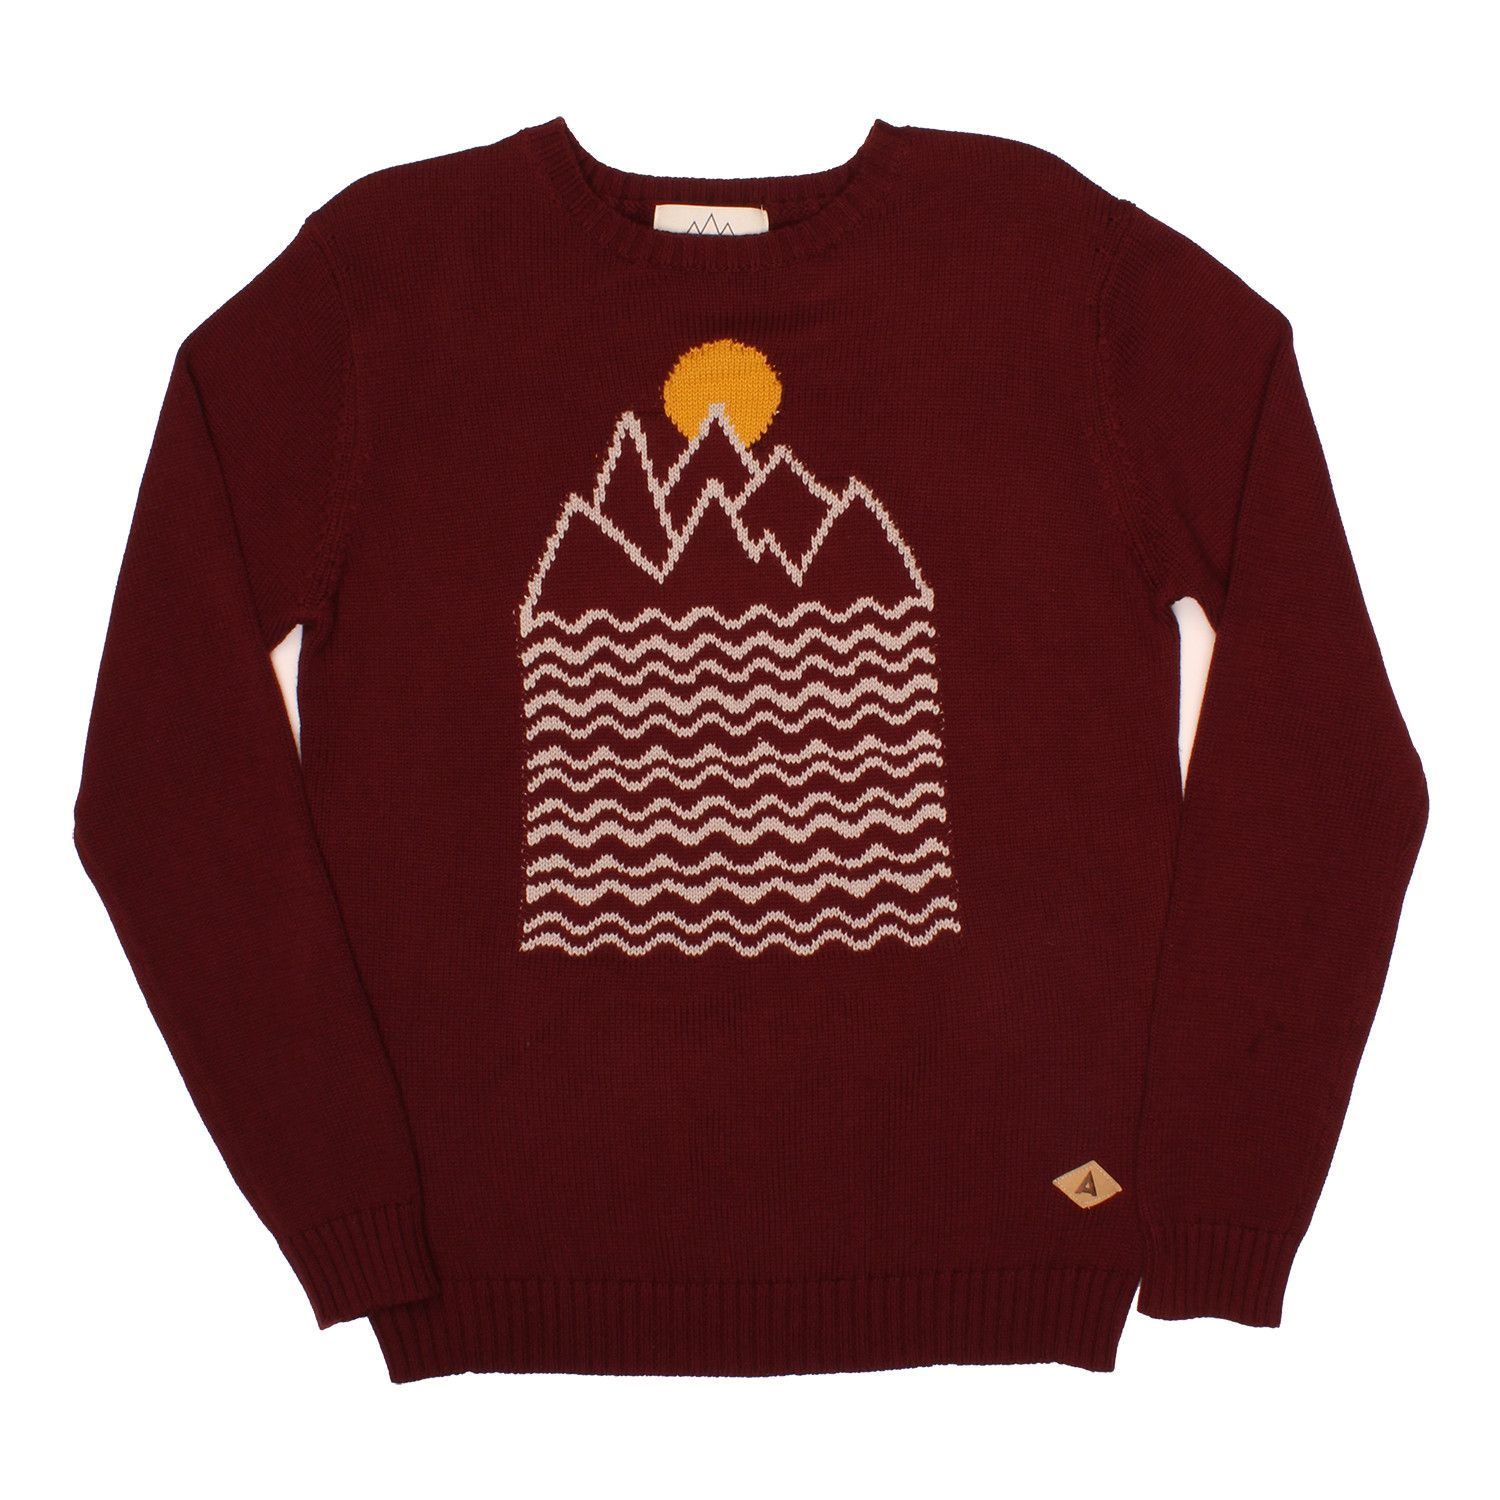 Altru Apparel Mountains and Sun Sweater